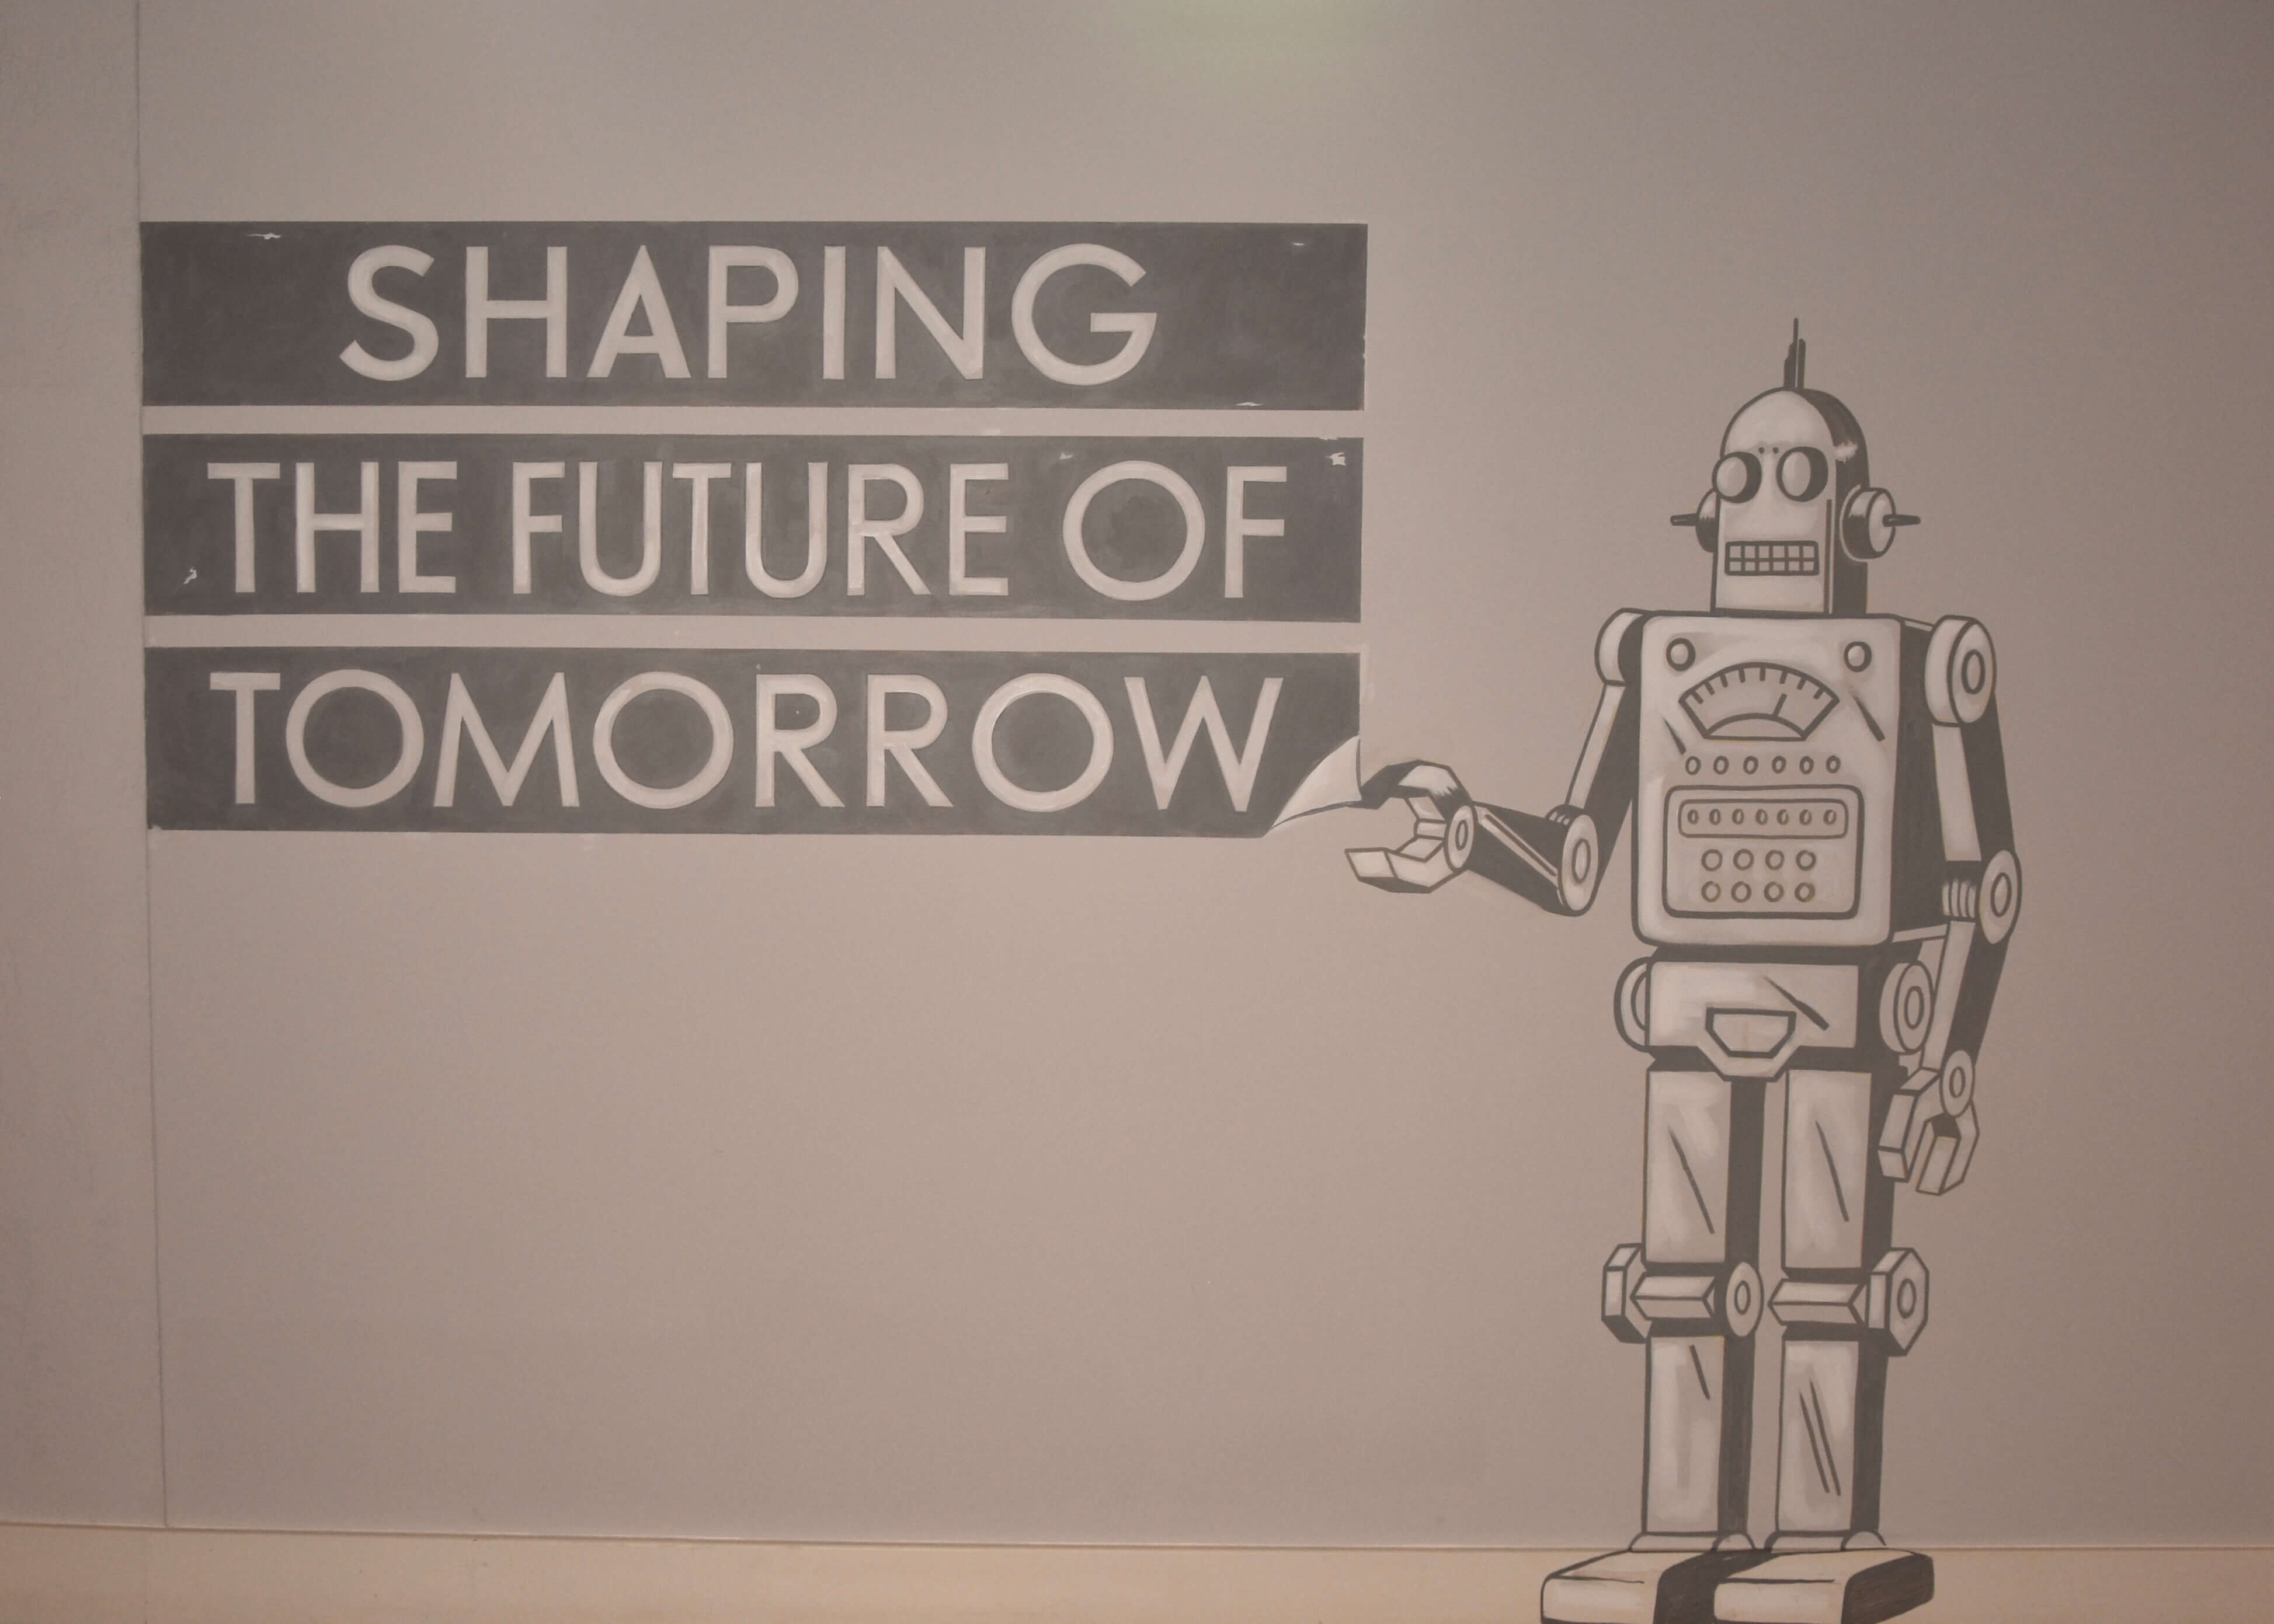 Shaping the future of tomorrow slogan on a wall illustration of a robot